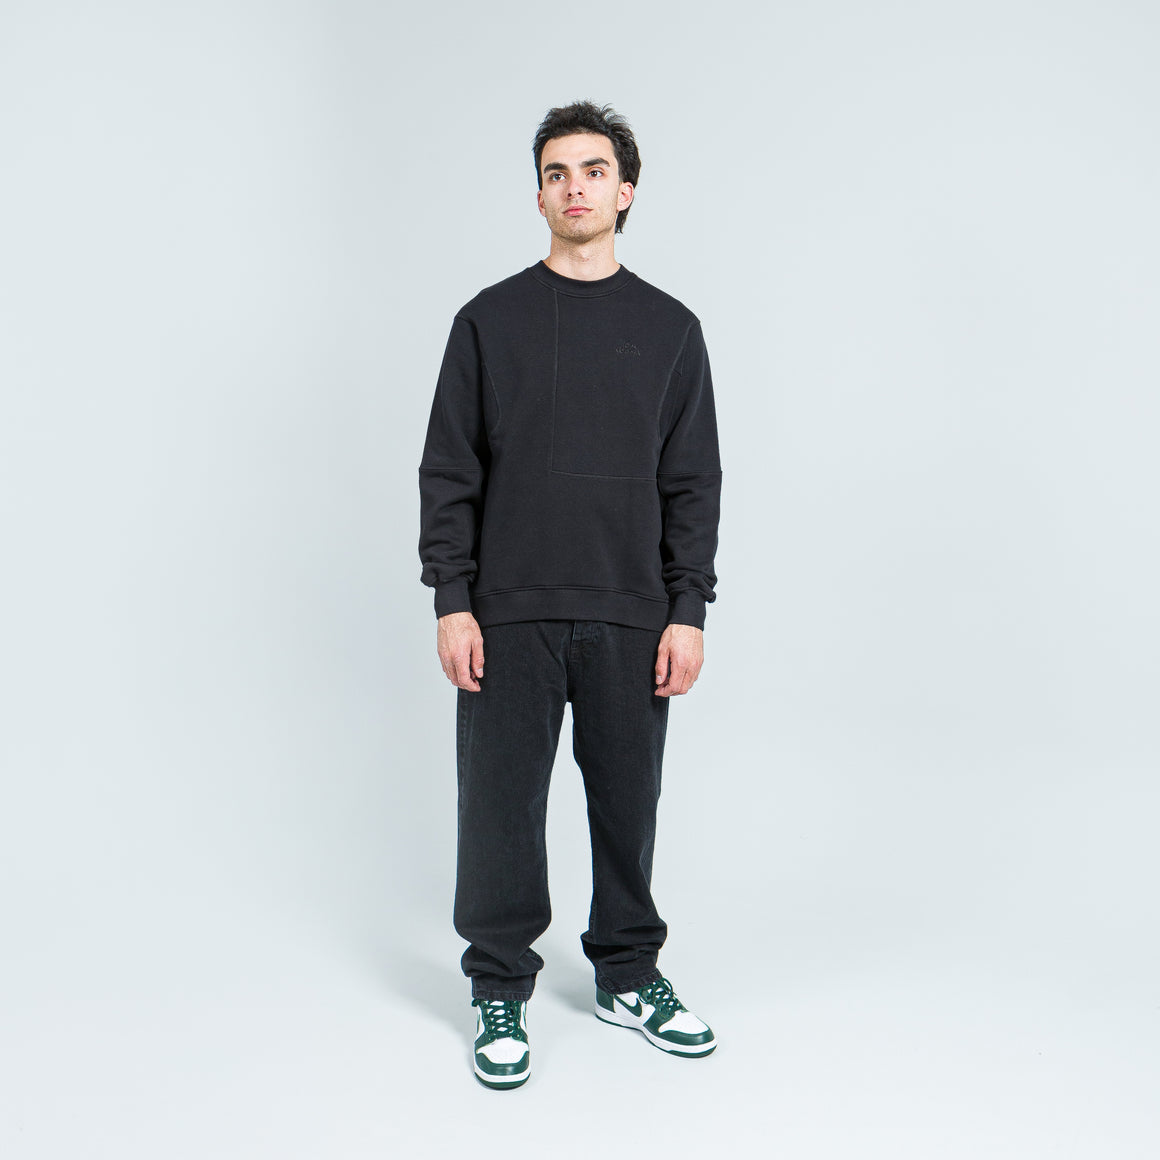 Tom Wood - The Waves Sweater - Pistol Black - Up There